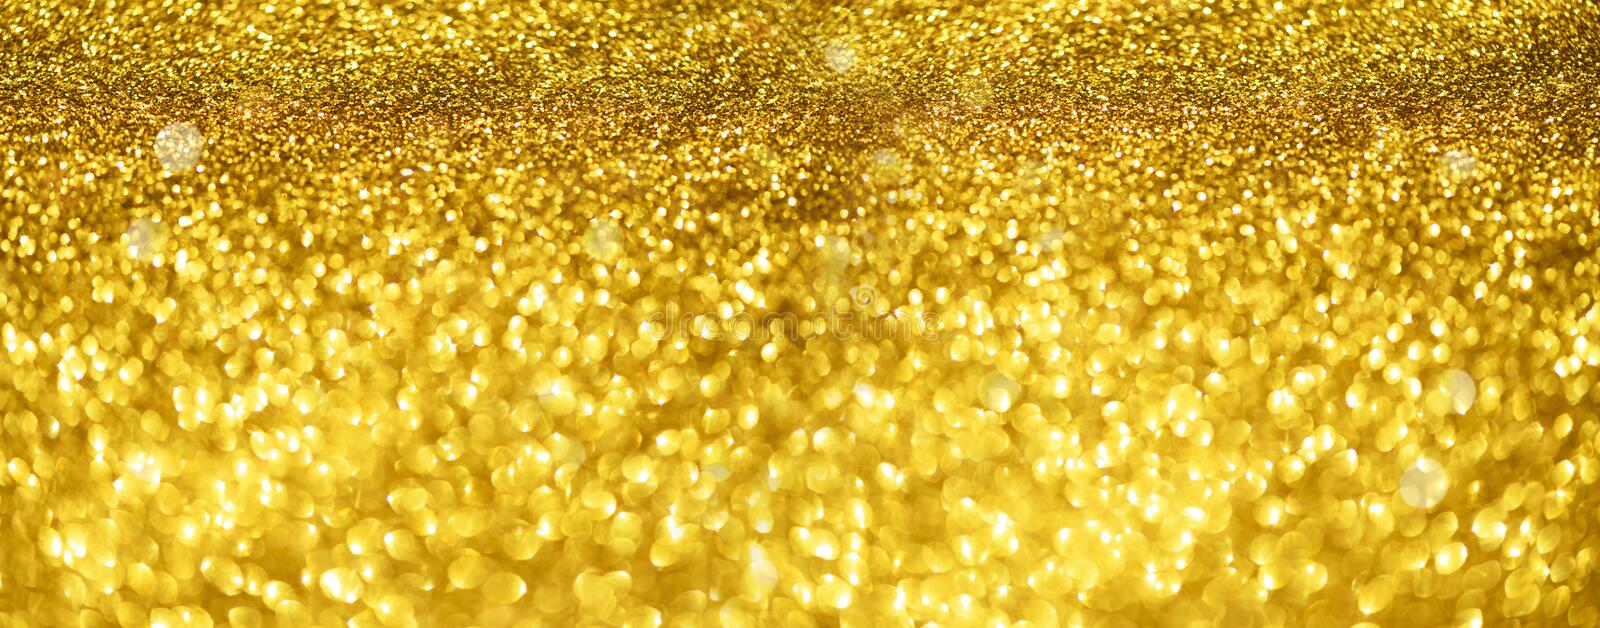 Gold glitter banner. Shiny abstract textured background with golden lights, bokeh. Christmas, new year concept with copy space for. Your greeting stock photography